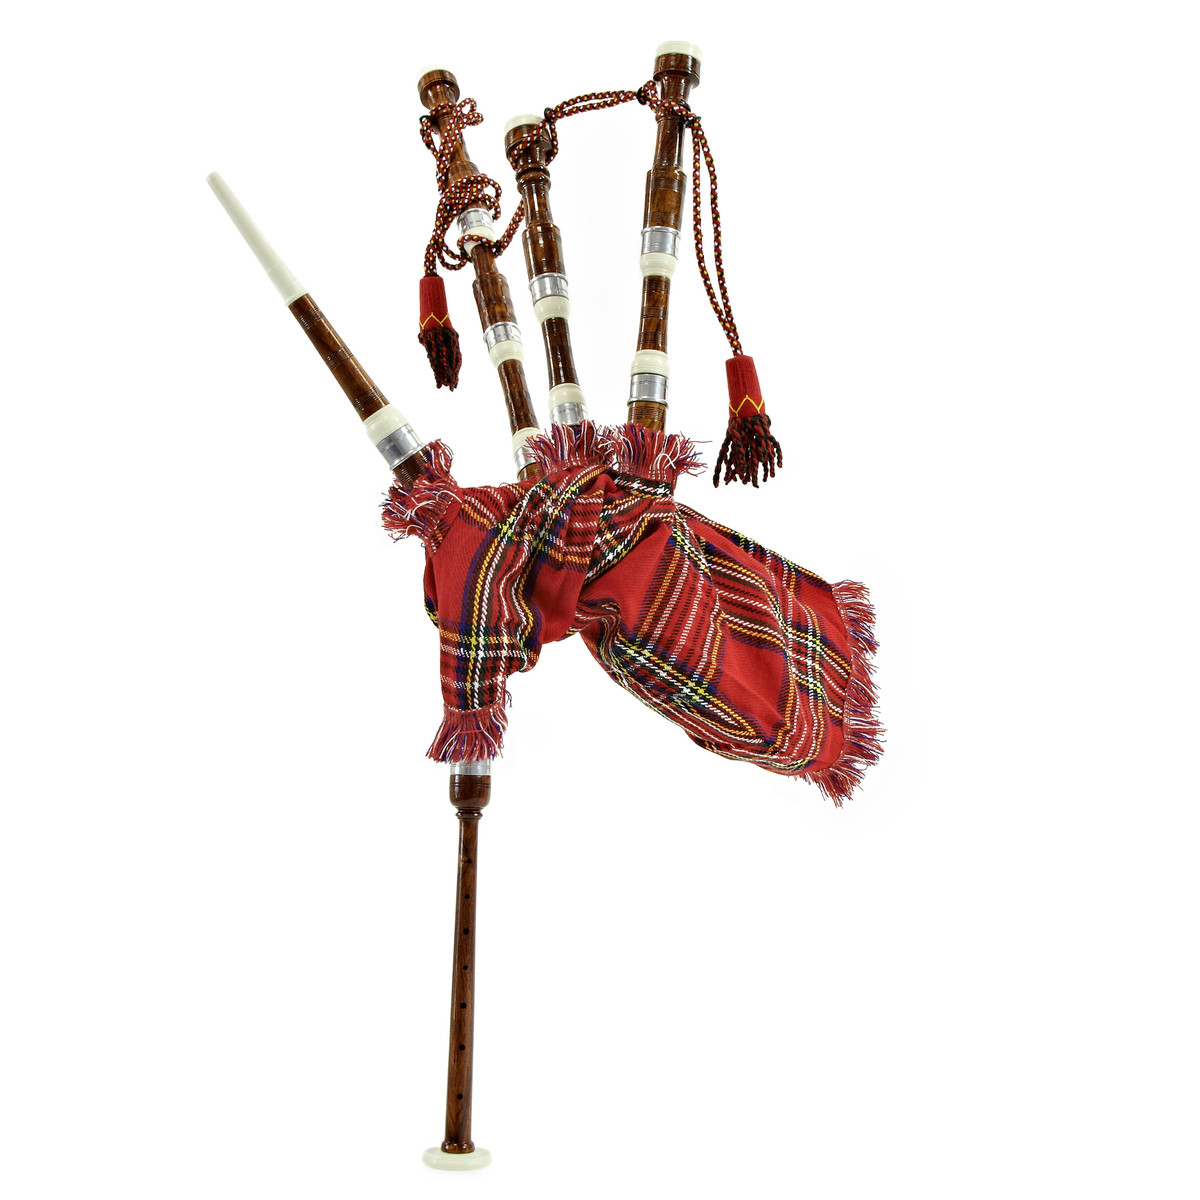 Image of Bagpipes by Gear4music Junior Royal Stewart